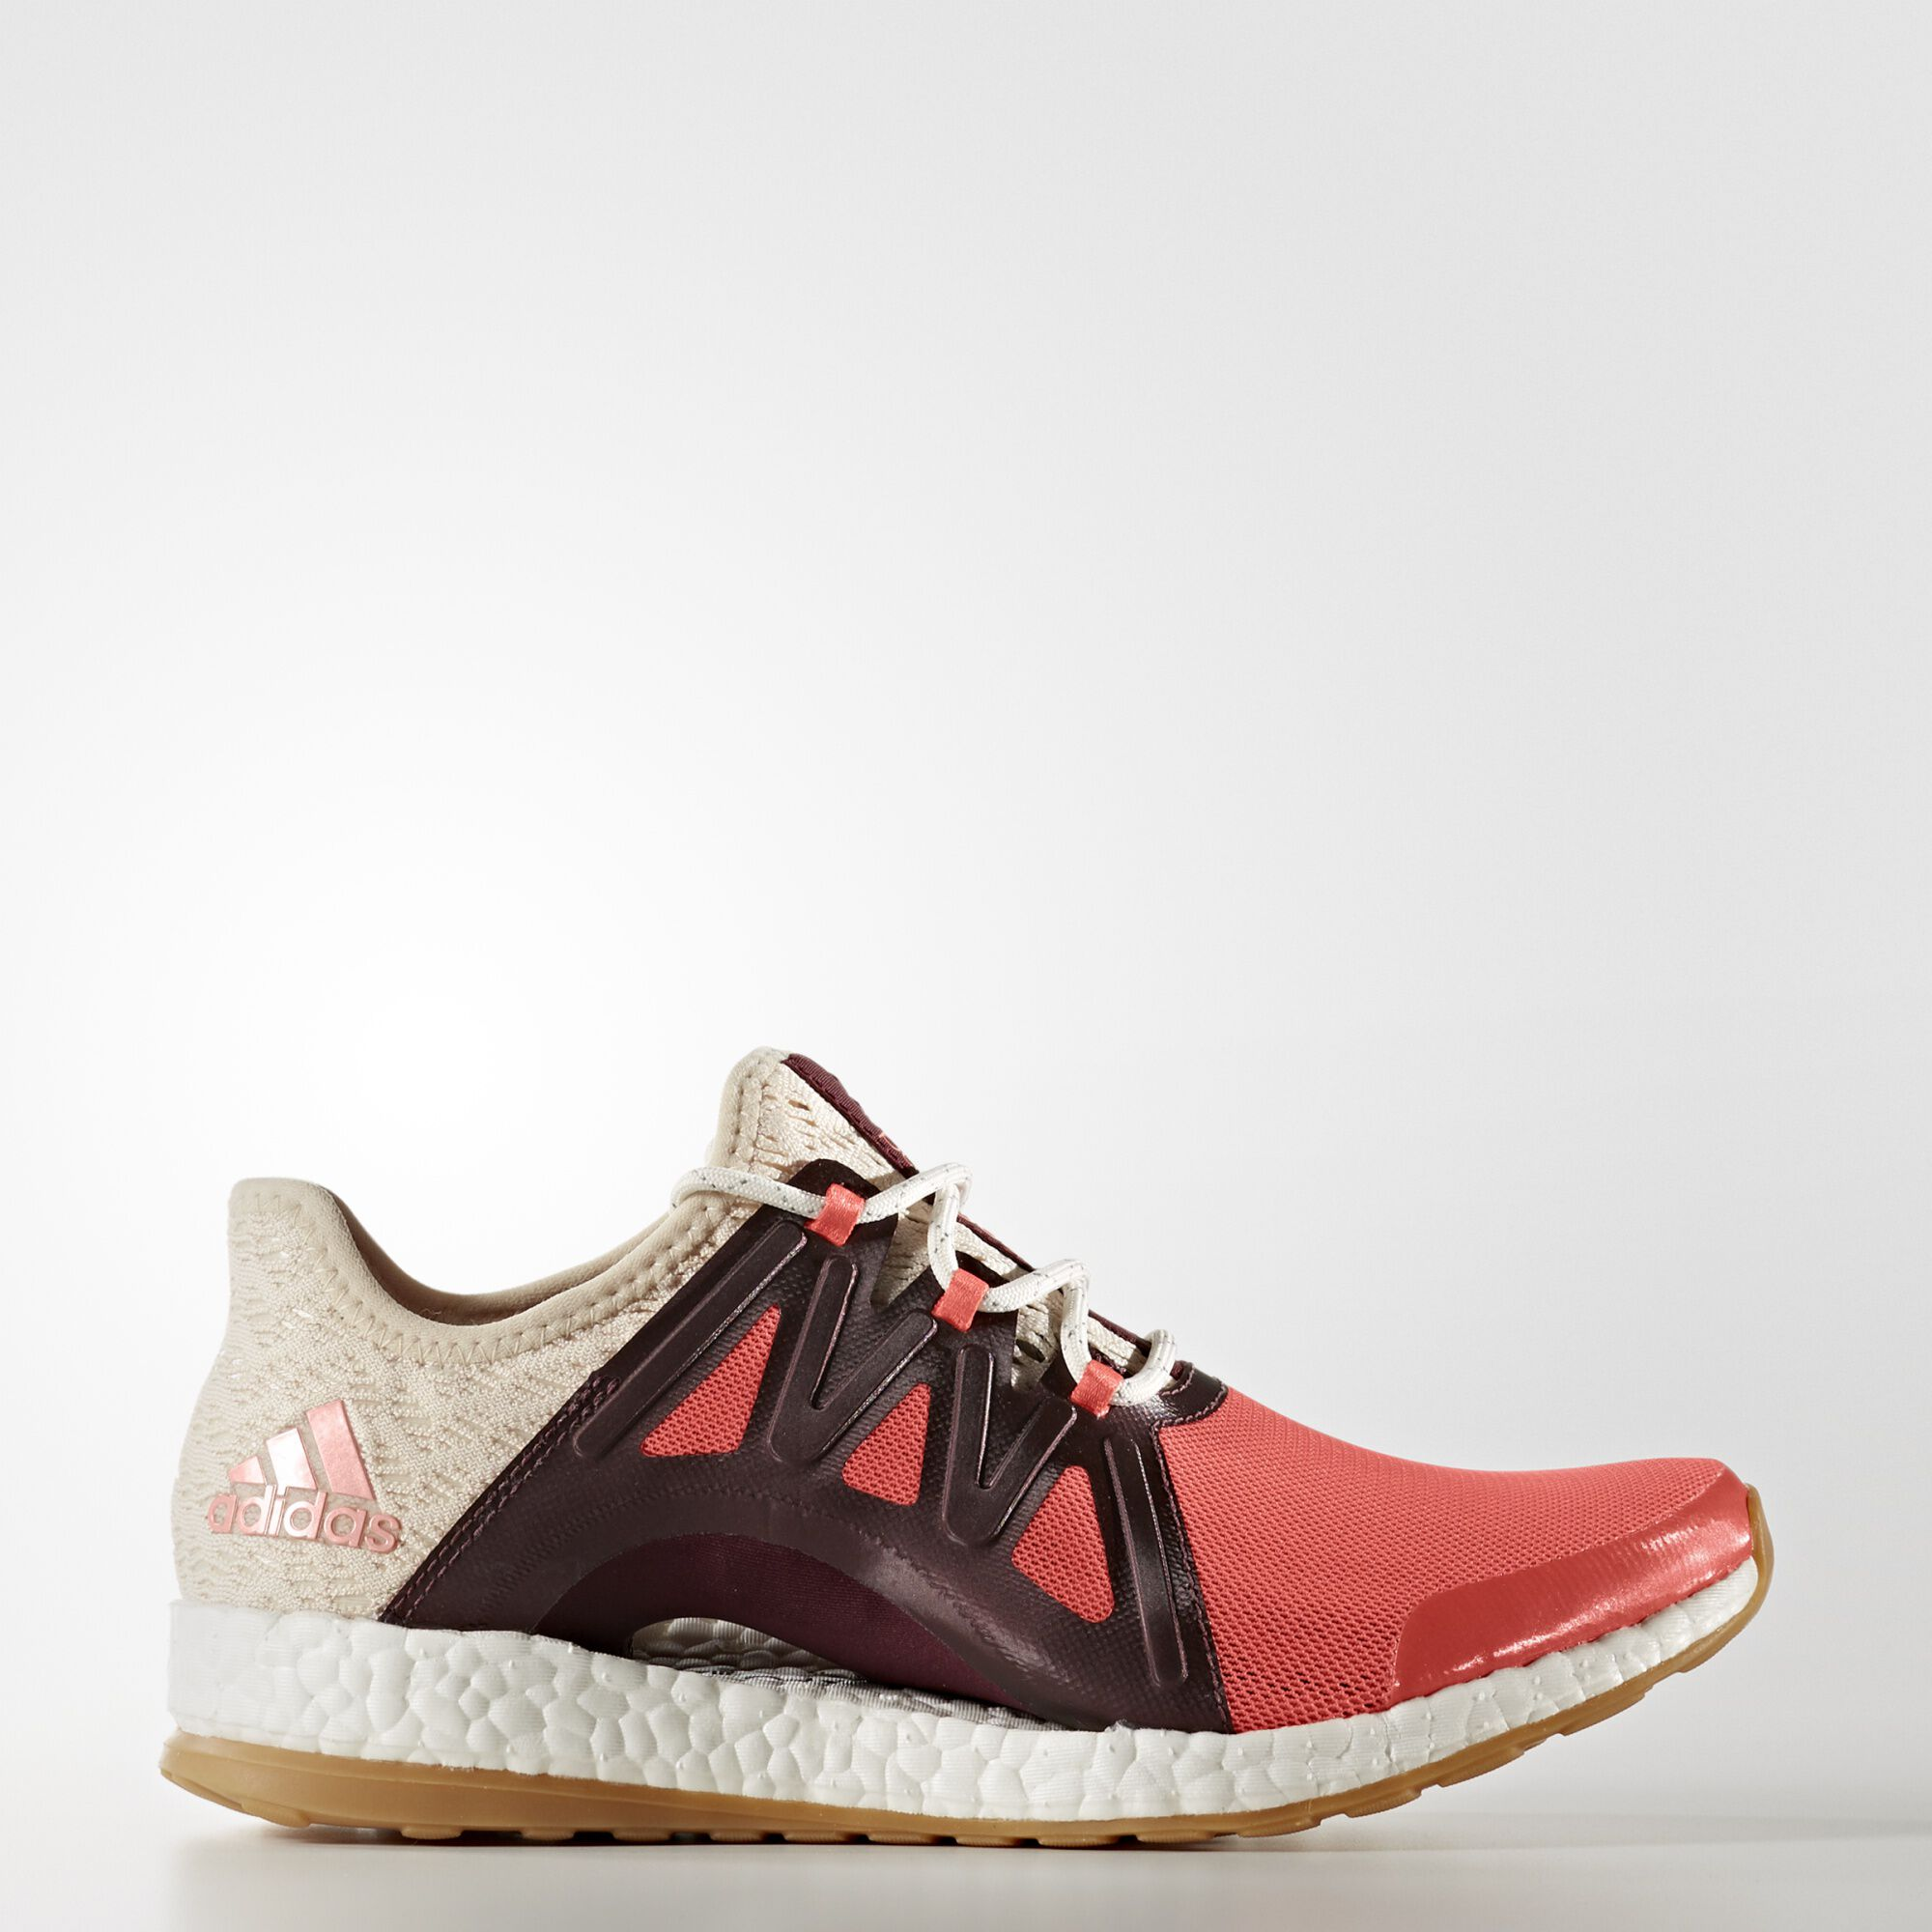 Adidas Shoes Women New Collection